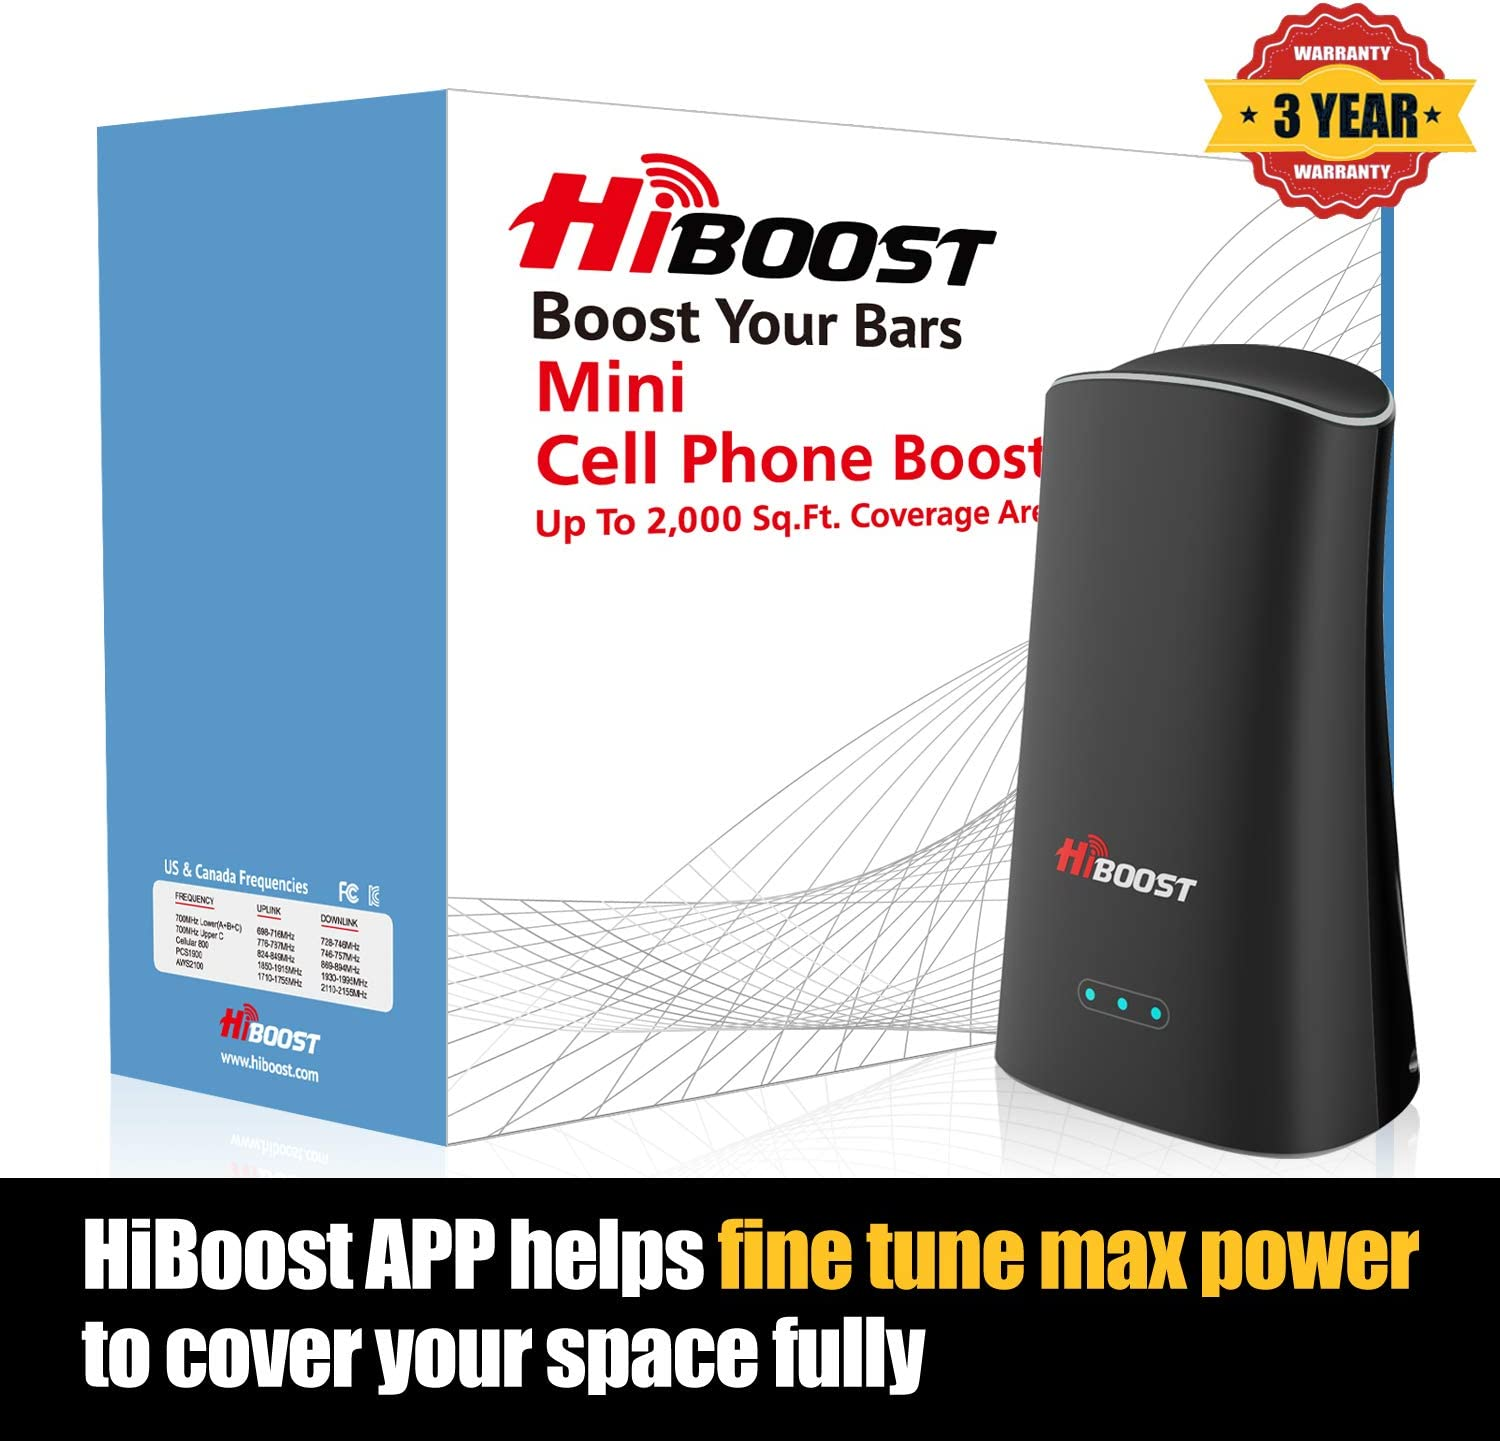 HiBoost Cell Phone Signal Booster Cellular Booster Signal Amplifier for Home and Office up to 2,000 Sq.Ft